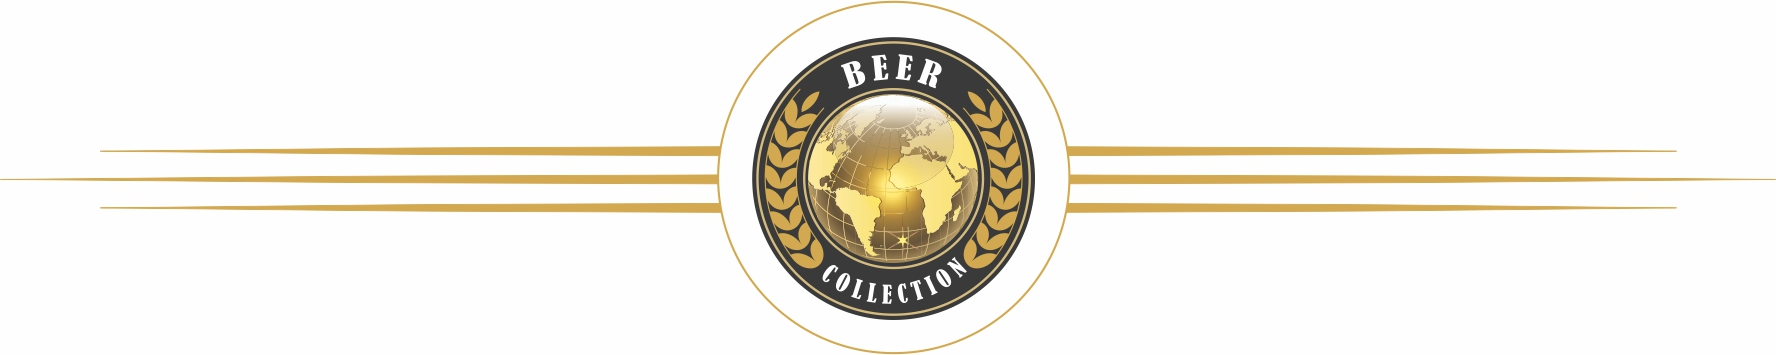 beer-colection-logo01.jpg